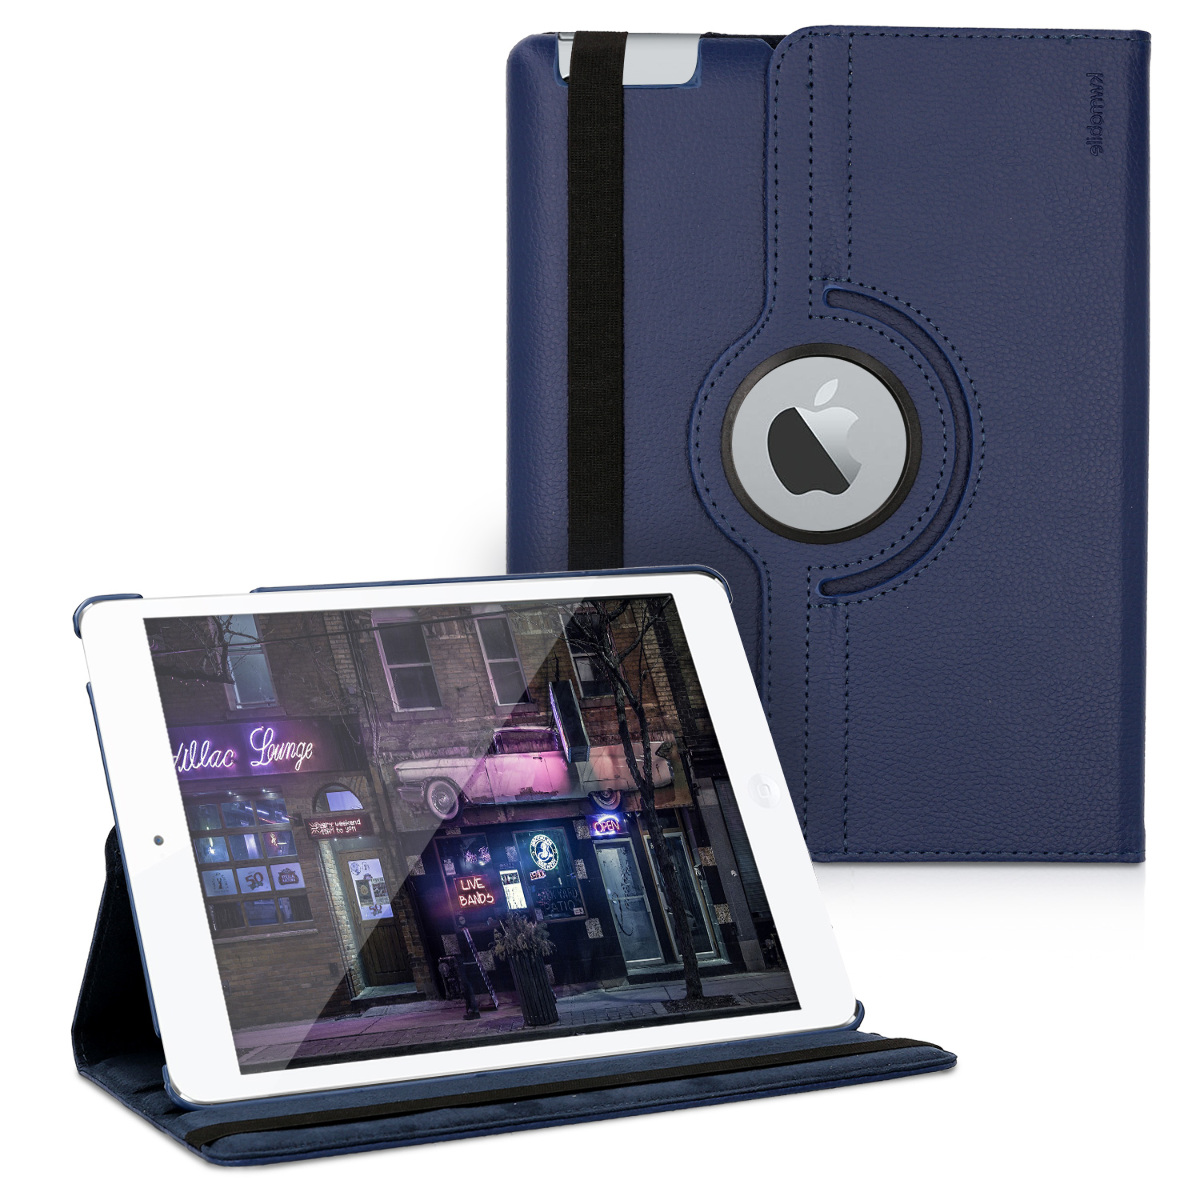 KW Θήκη 360° Apple iPad 2 / 3 / 4 - PU Leather Protective Tablet Cover with Stand Function - Dark Blue (11104.17)